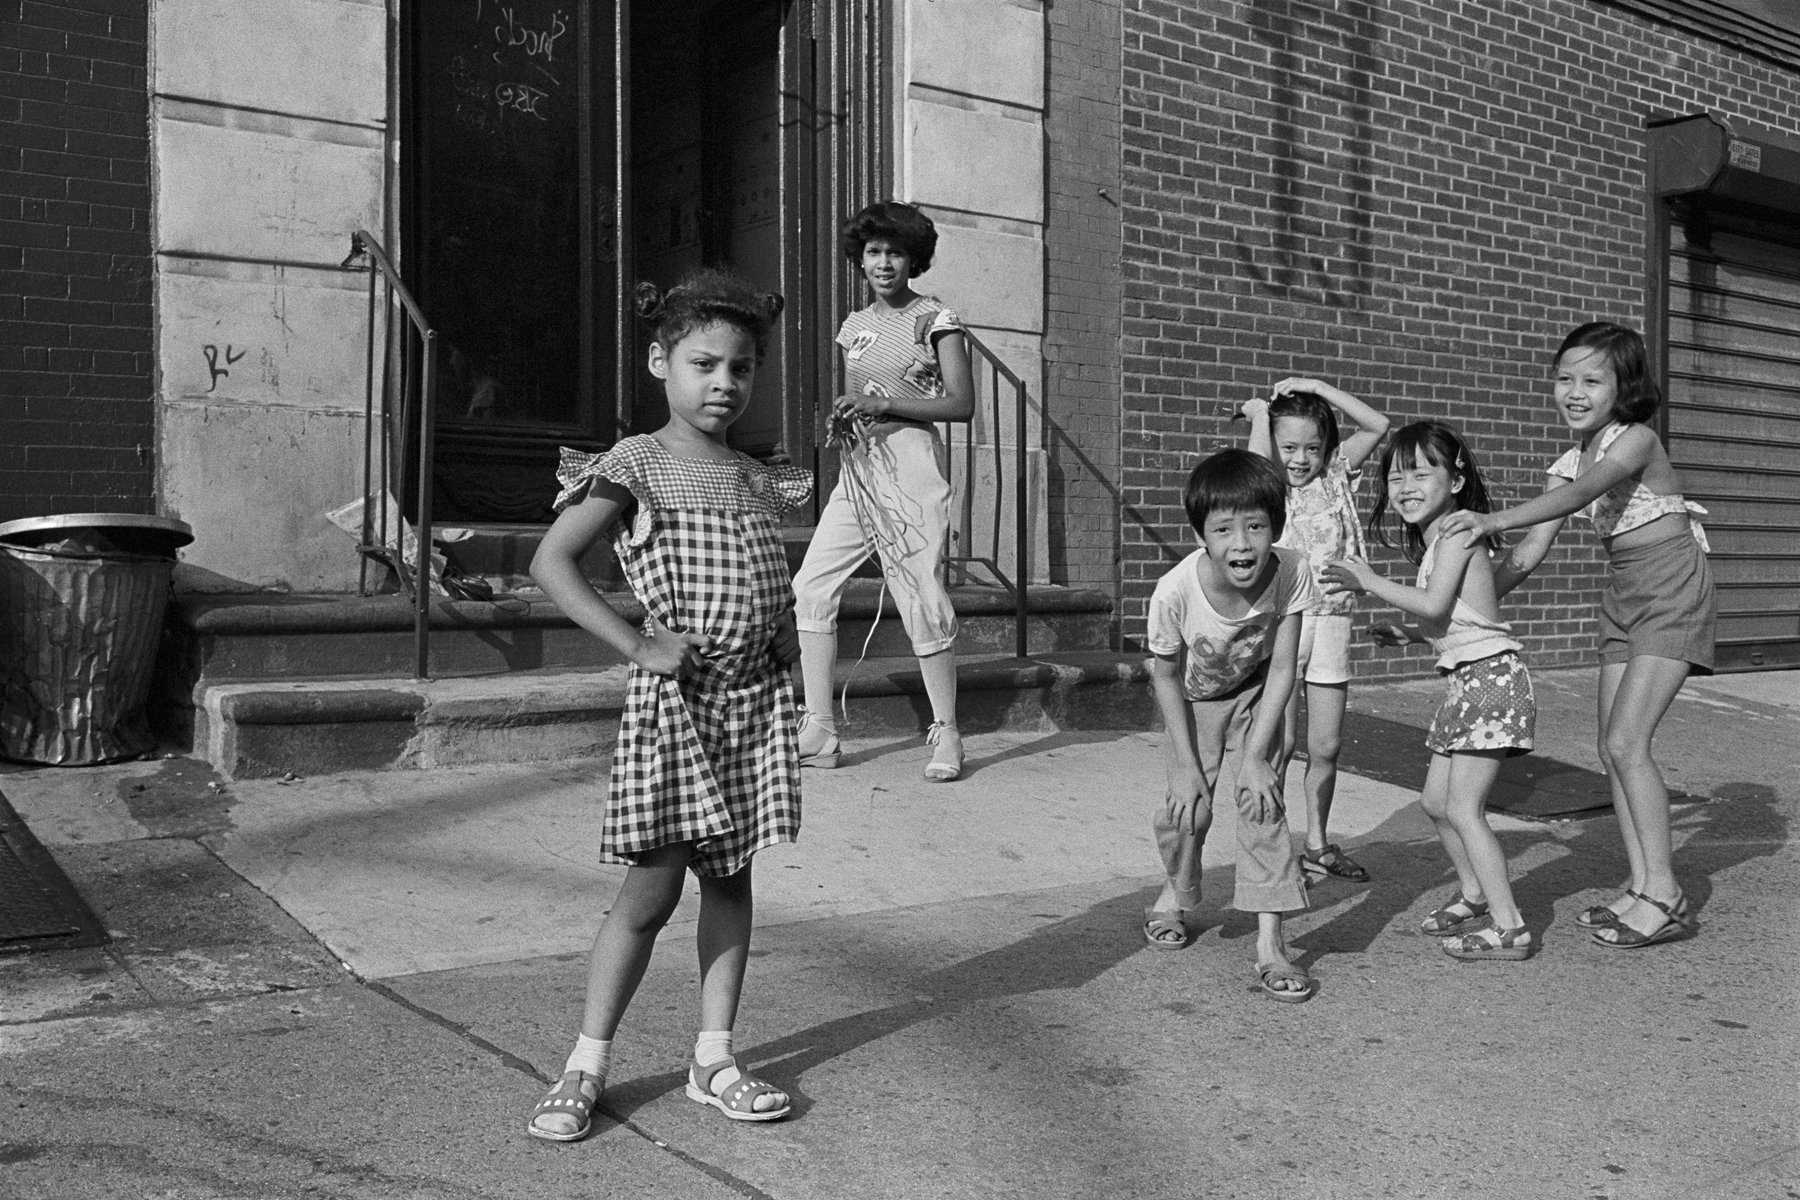 In front of 41 Kenmare St, New York City, 1982.The children in the photograph, now in their 40s, all grew up in 41 Kenmare and still keep in touch.